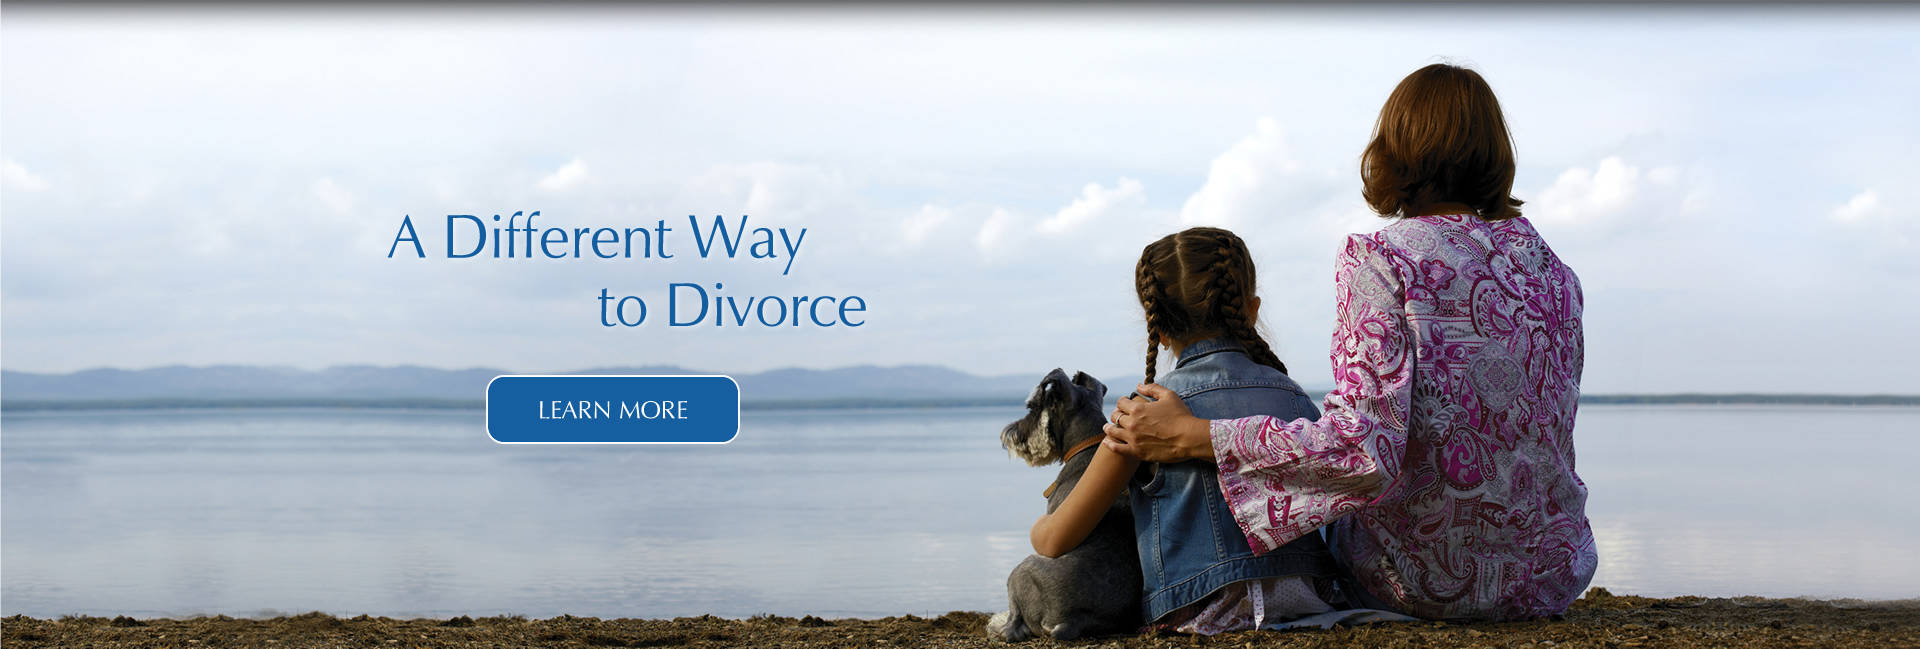 A Different Way to Divorce